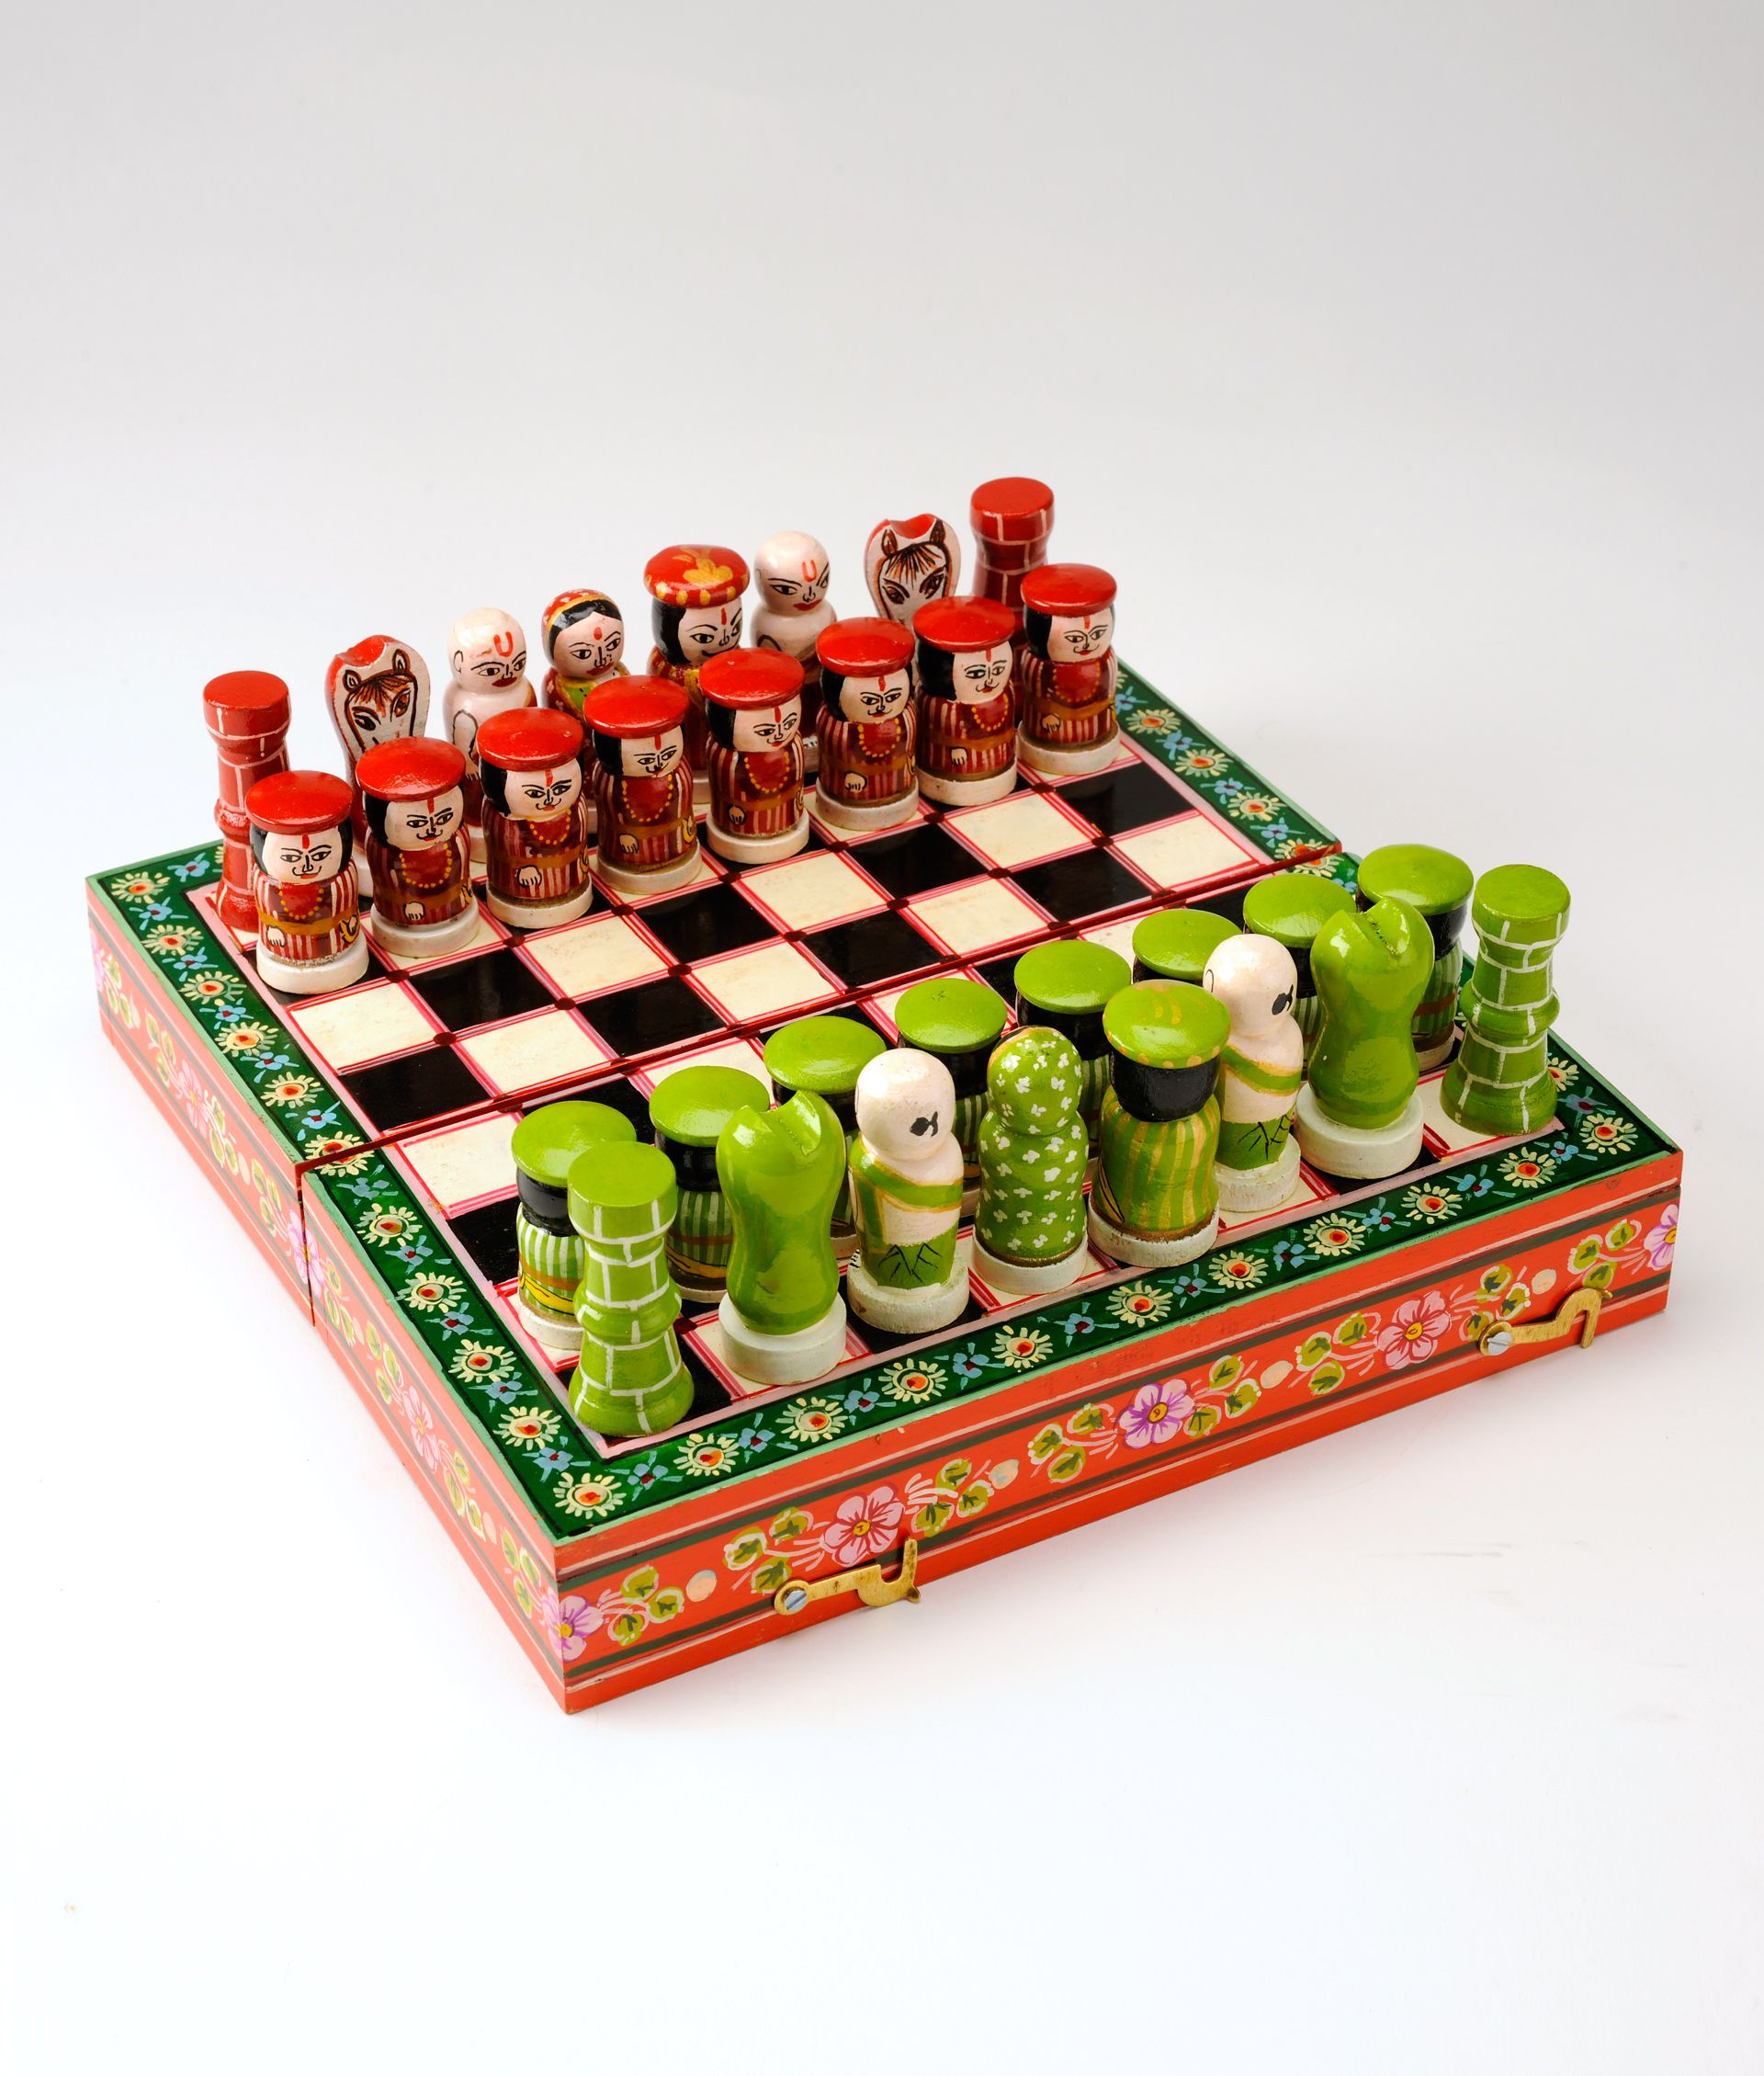 Lovely The Game Of Chess Originated In India In The Sixth Century AD, Spreading  West To Persia And The Western World. Playing With This Unique Handmade And  ...